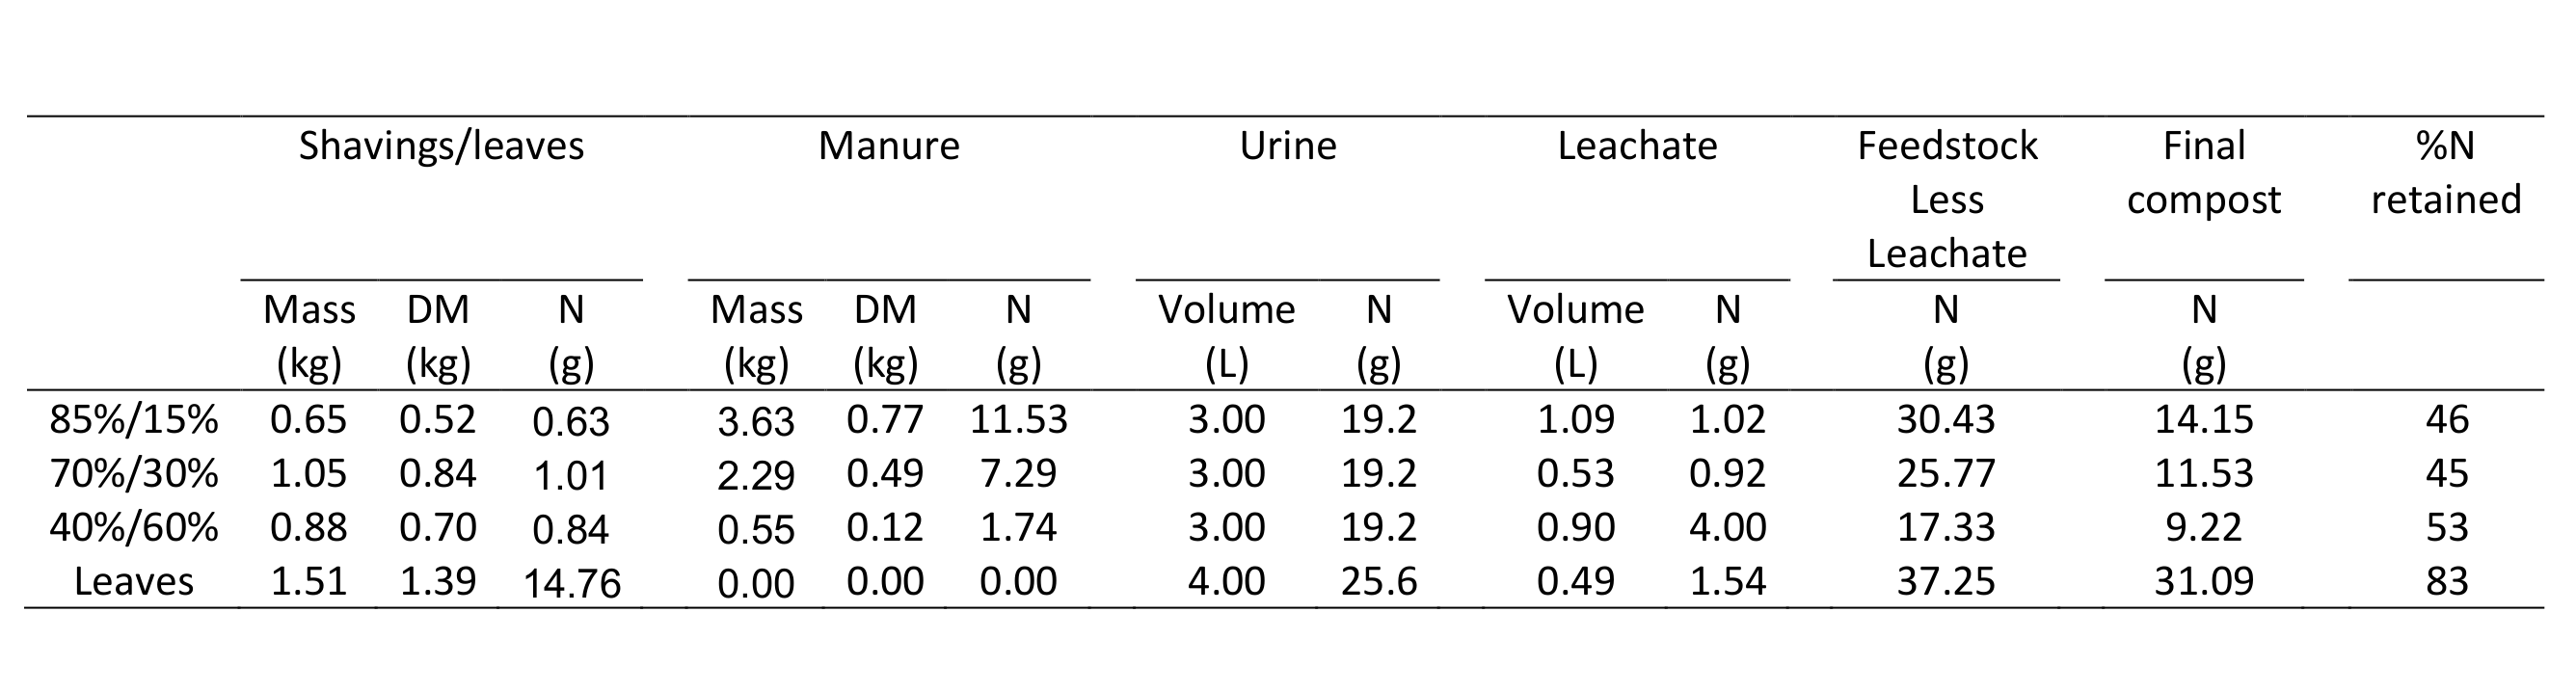 Table 1. Retention of nitrogen during composting by four different compost recipes